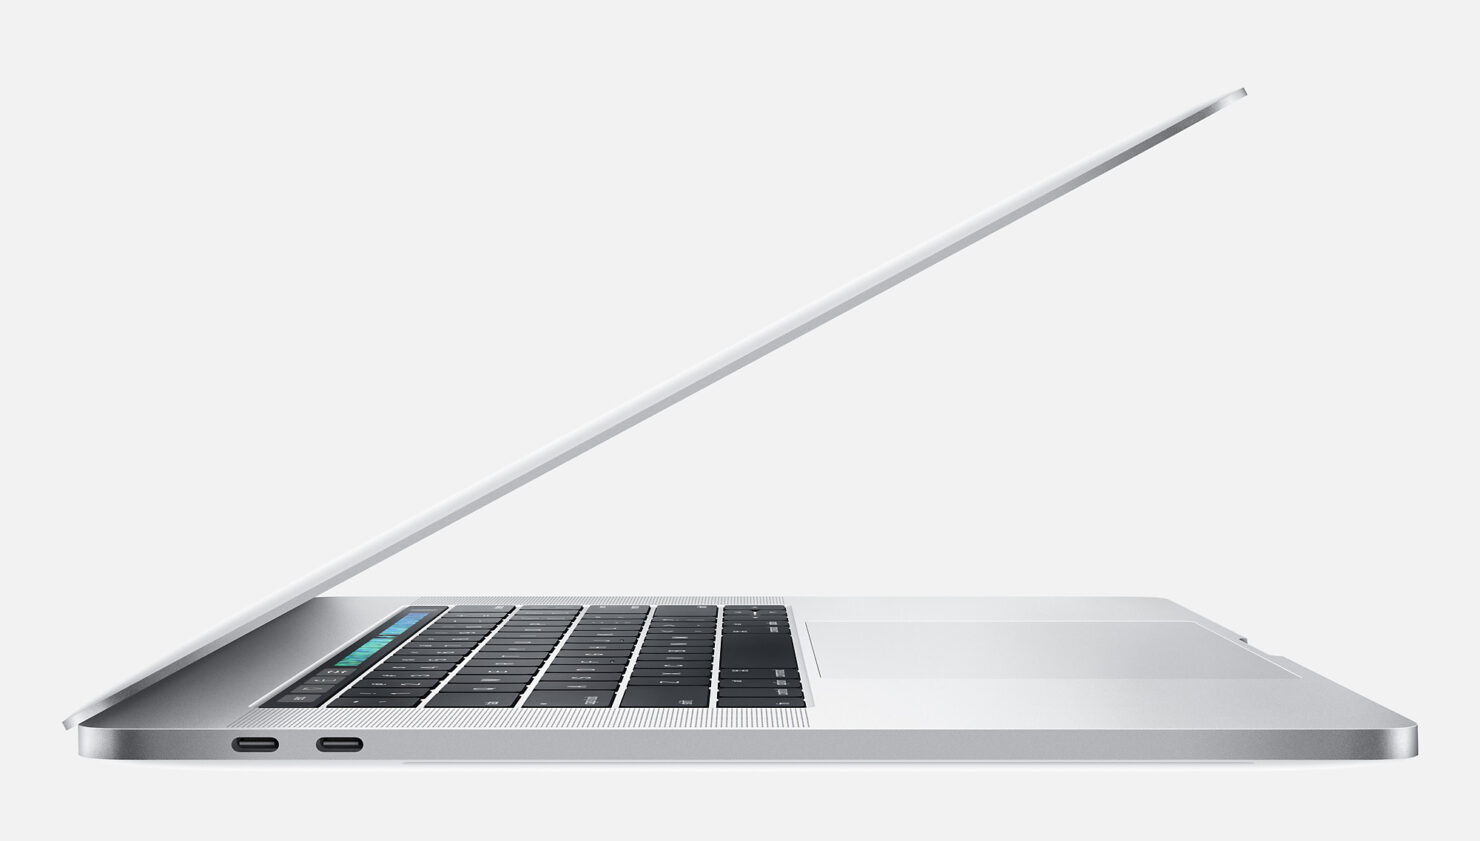 16-Inch MacBook Pro Accessories Could Include 96-Watt USB-C Charger